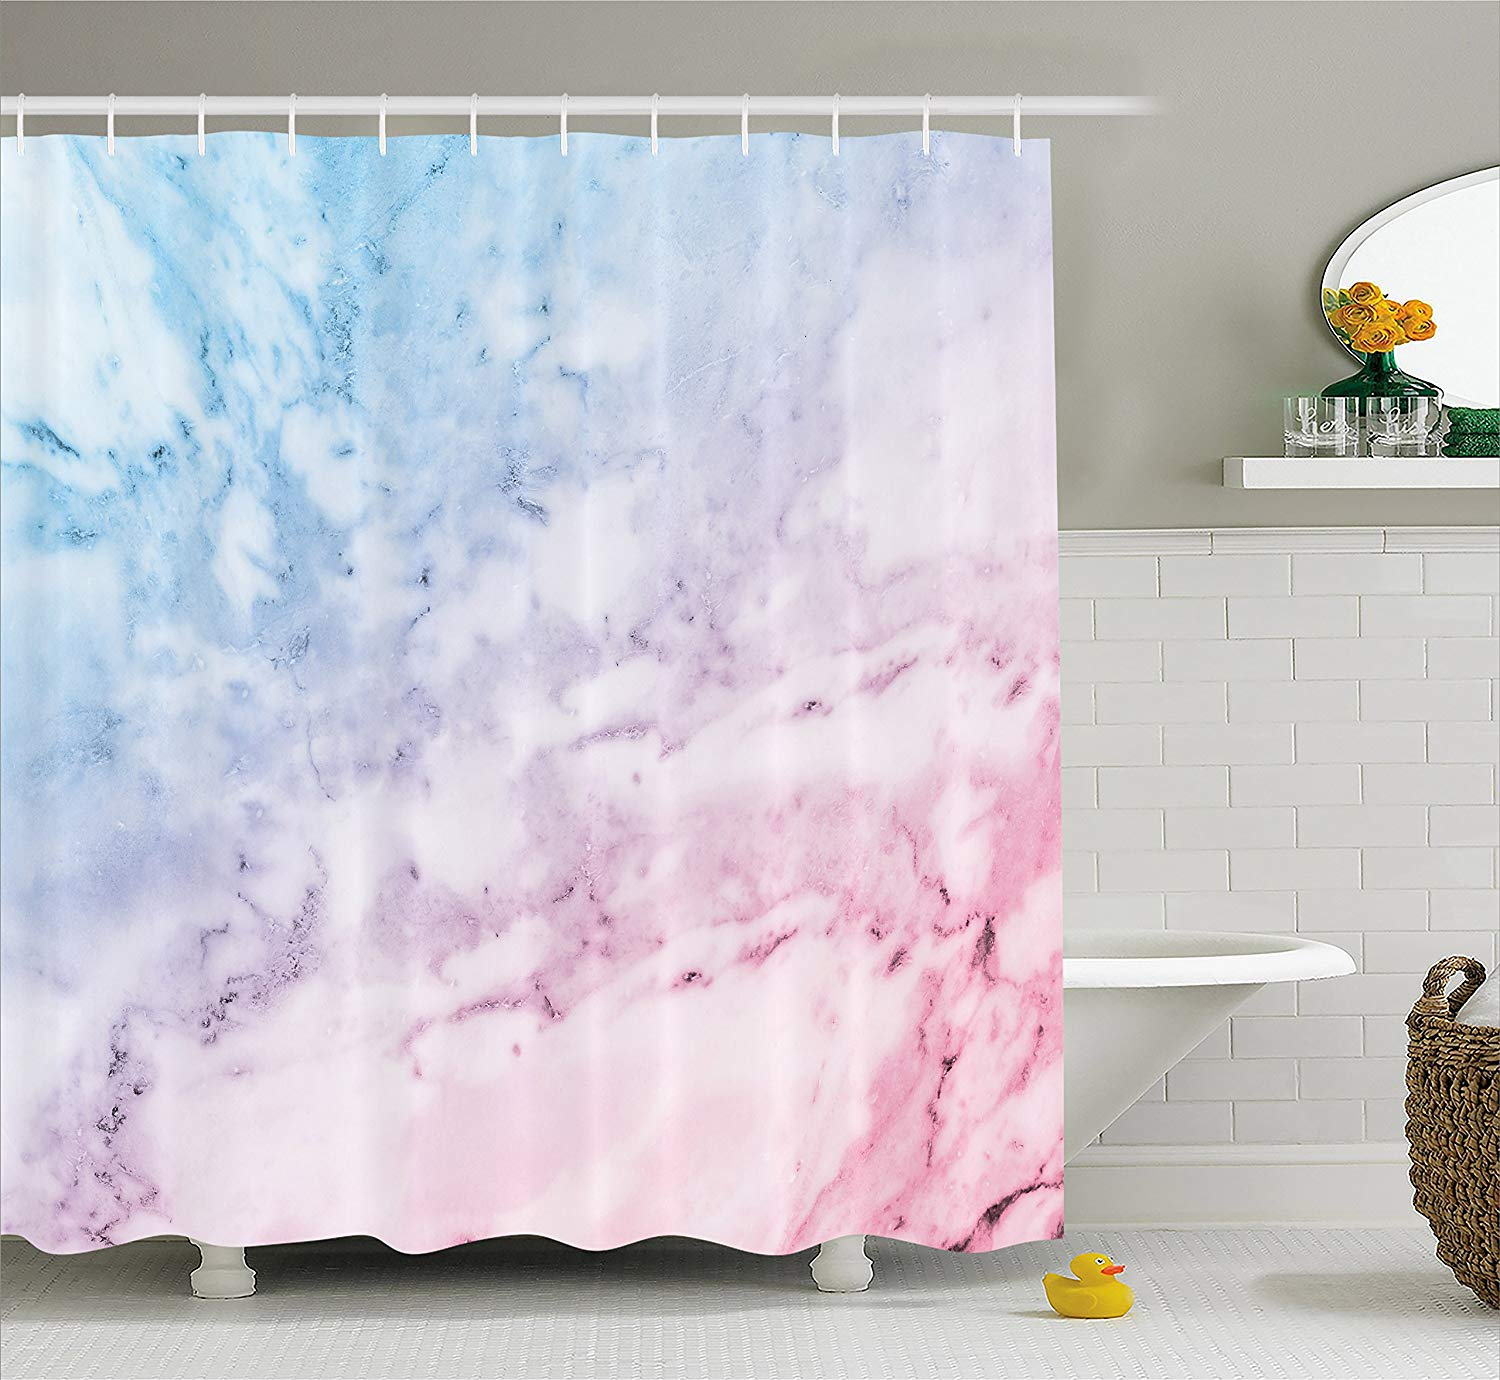 Ambesonne Marble Shower Curtain, Pastel Toned Cloudy Hazy Crack Lines Stained Antique Shabby Chic Design, Fabric Bathroom Decor Set with Hooks, 70 Inches, Light Blue Baby Pink